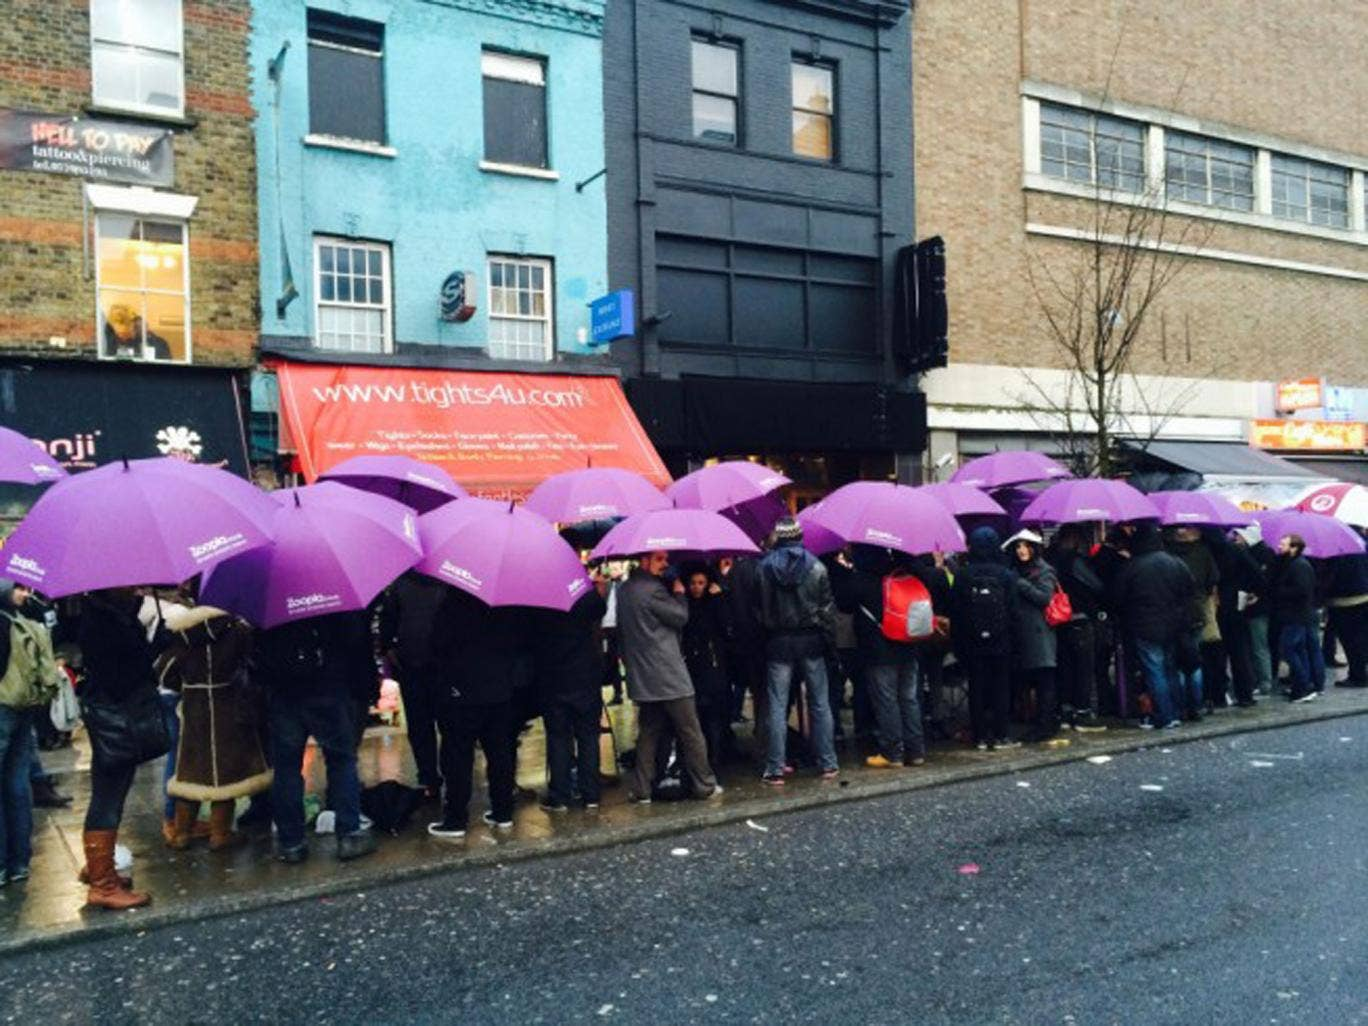 Purple rain: hundreds of Prince fans queued to see the musician play a secret show in Camden, North London